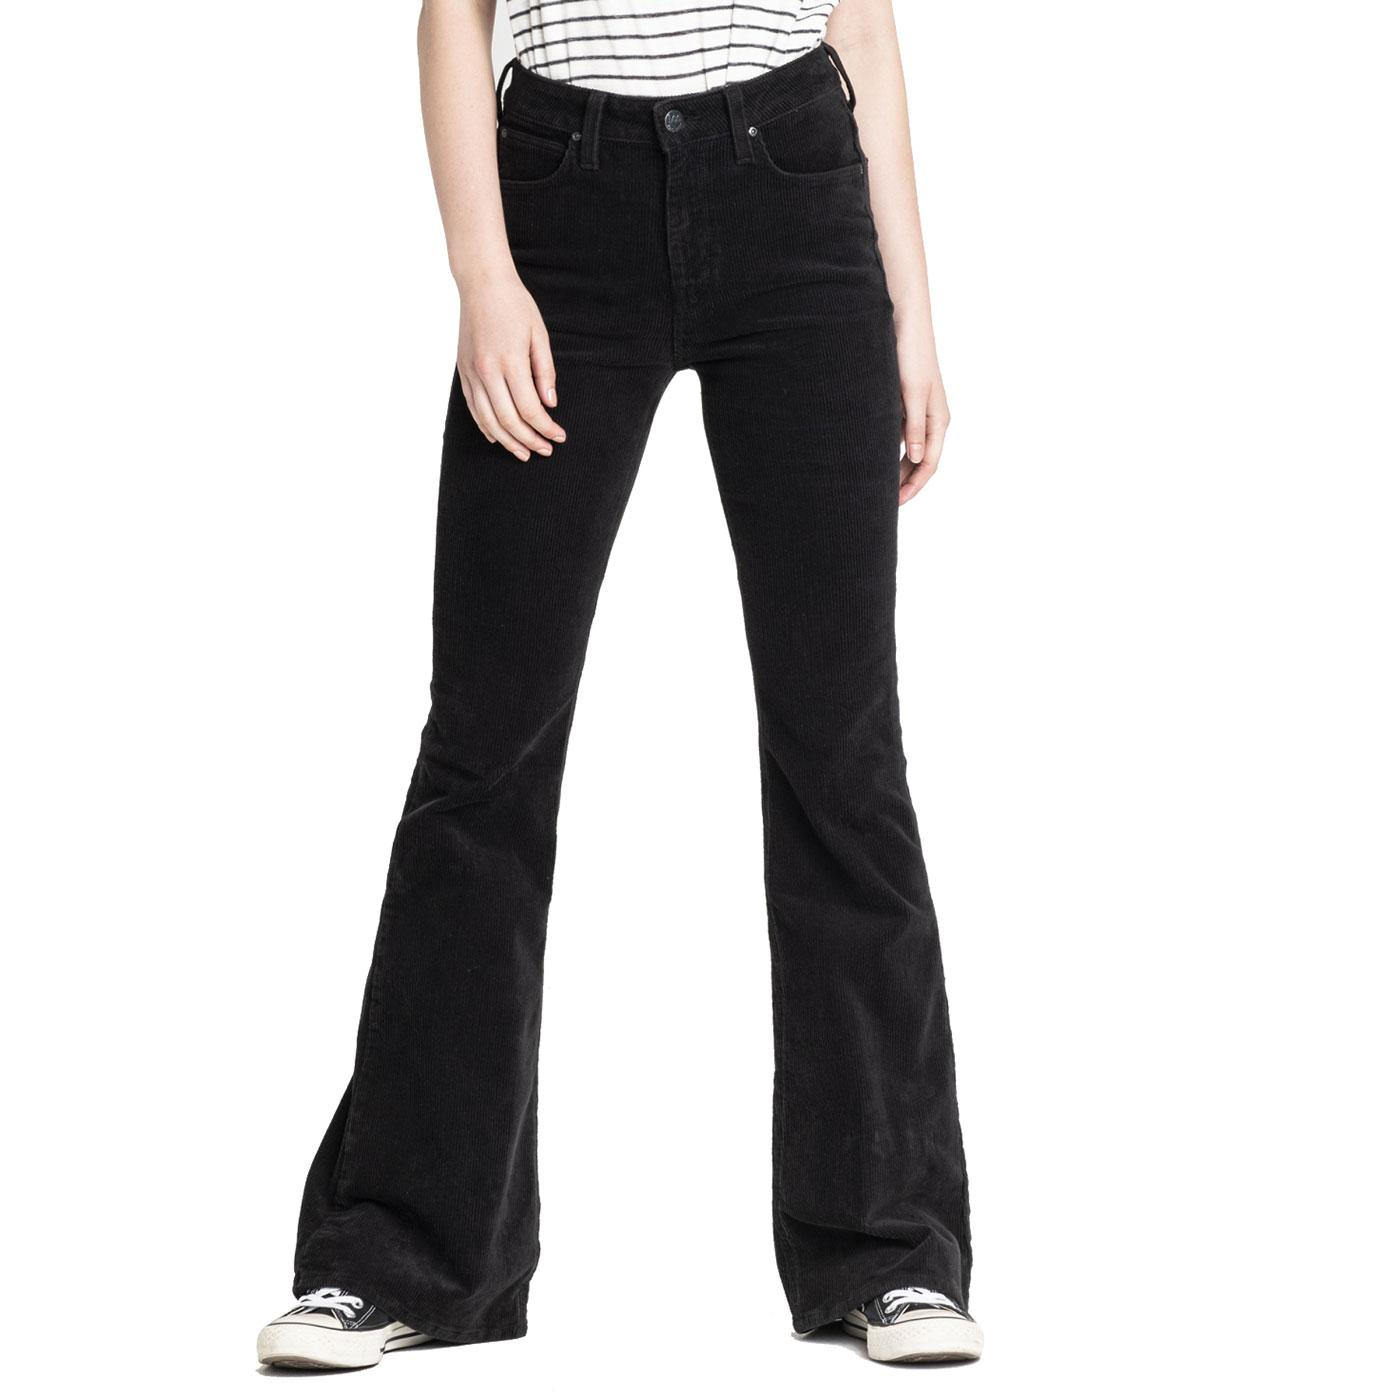 Breese LEE JEANS Retro High Rise Flare Cord Jeans